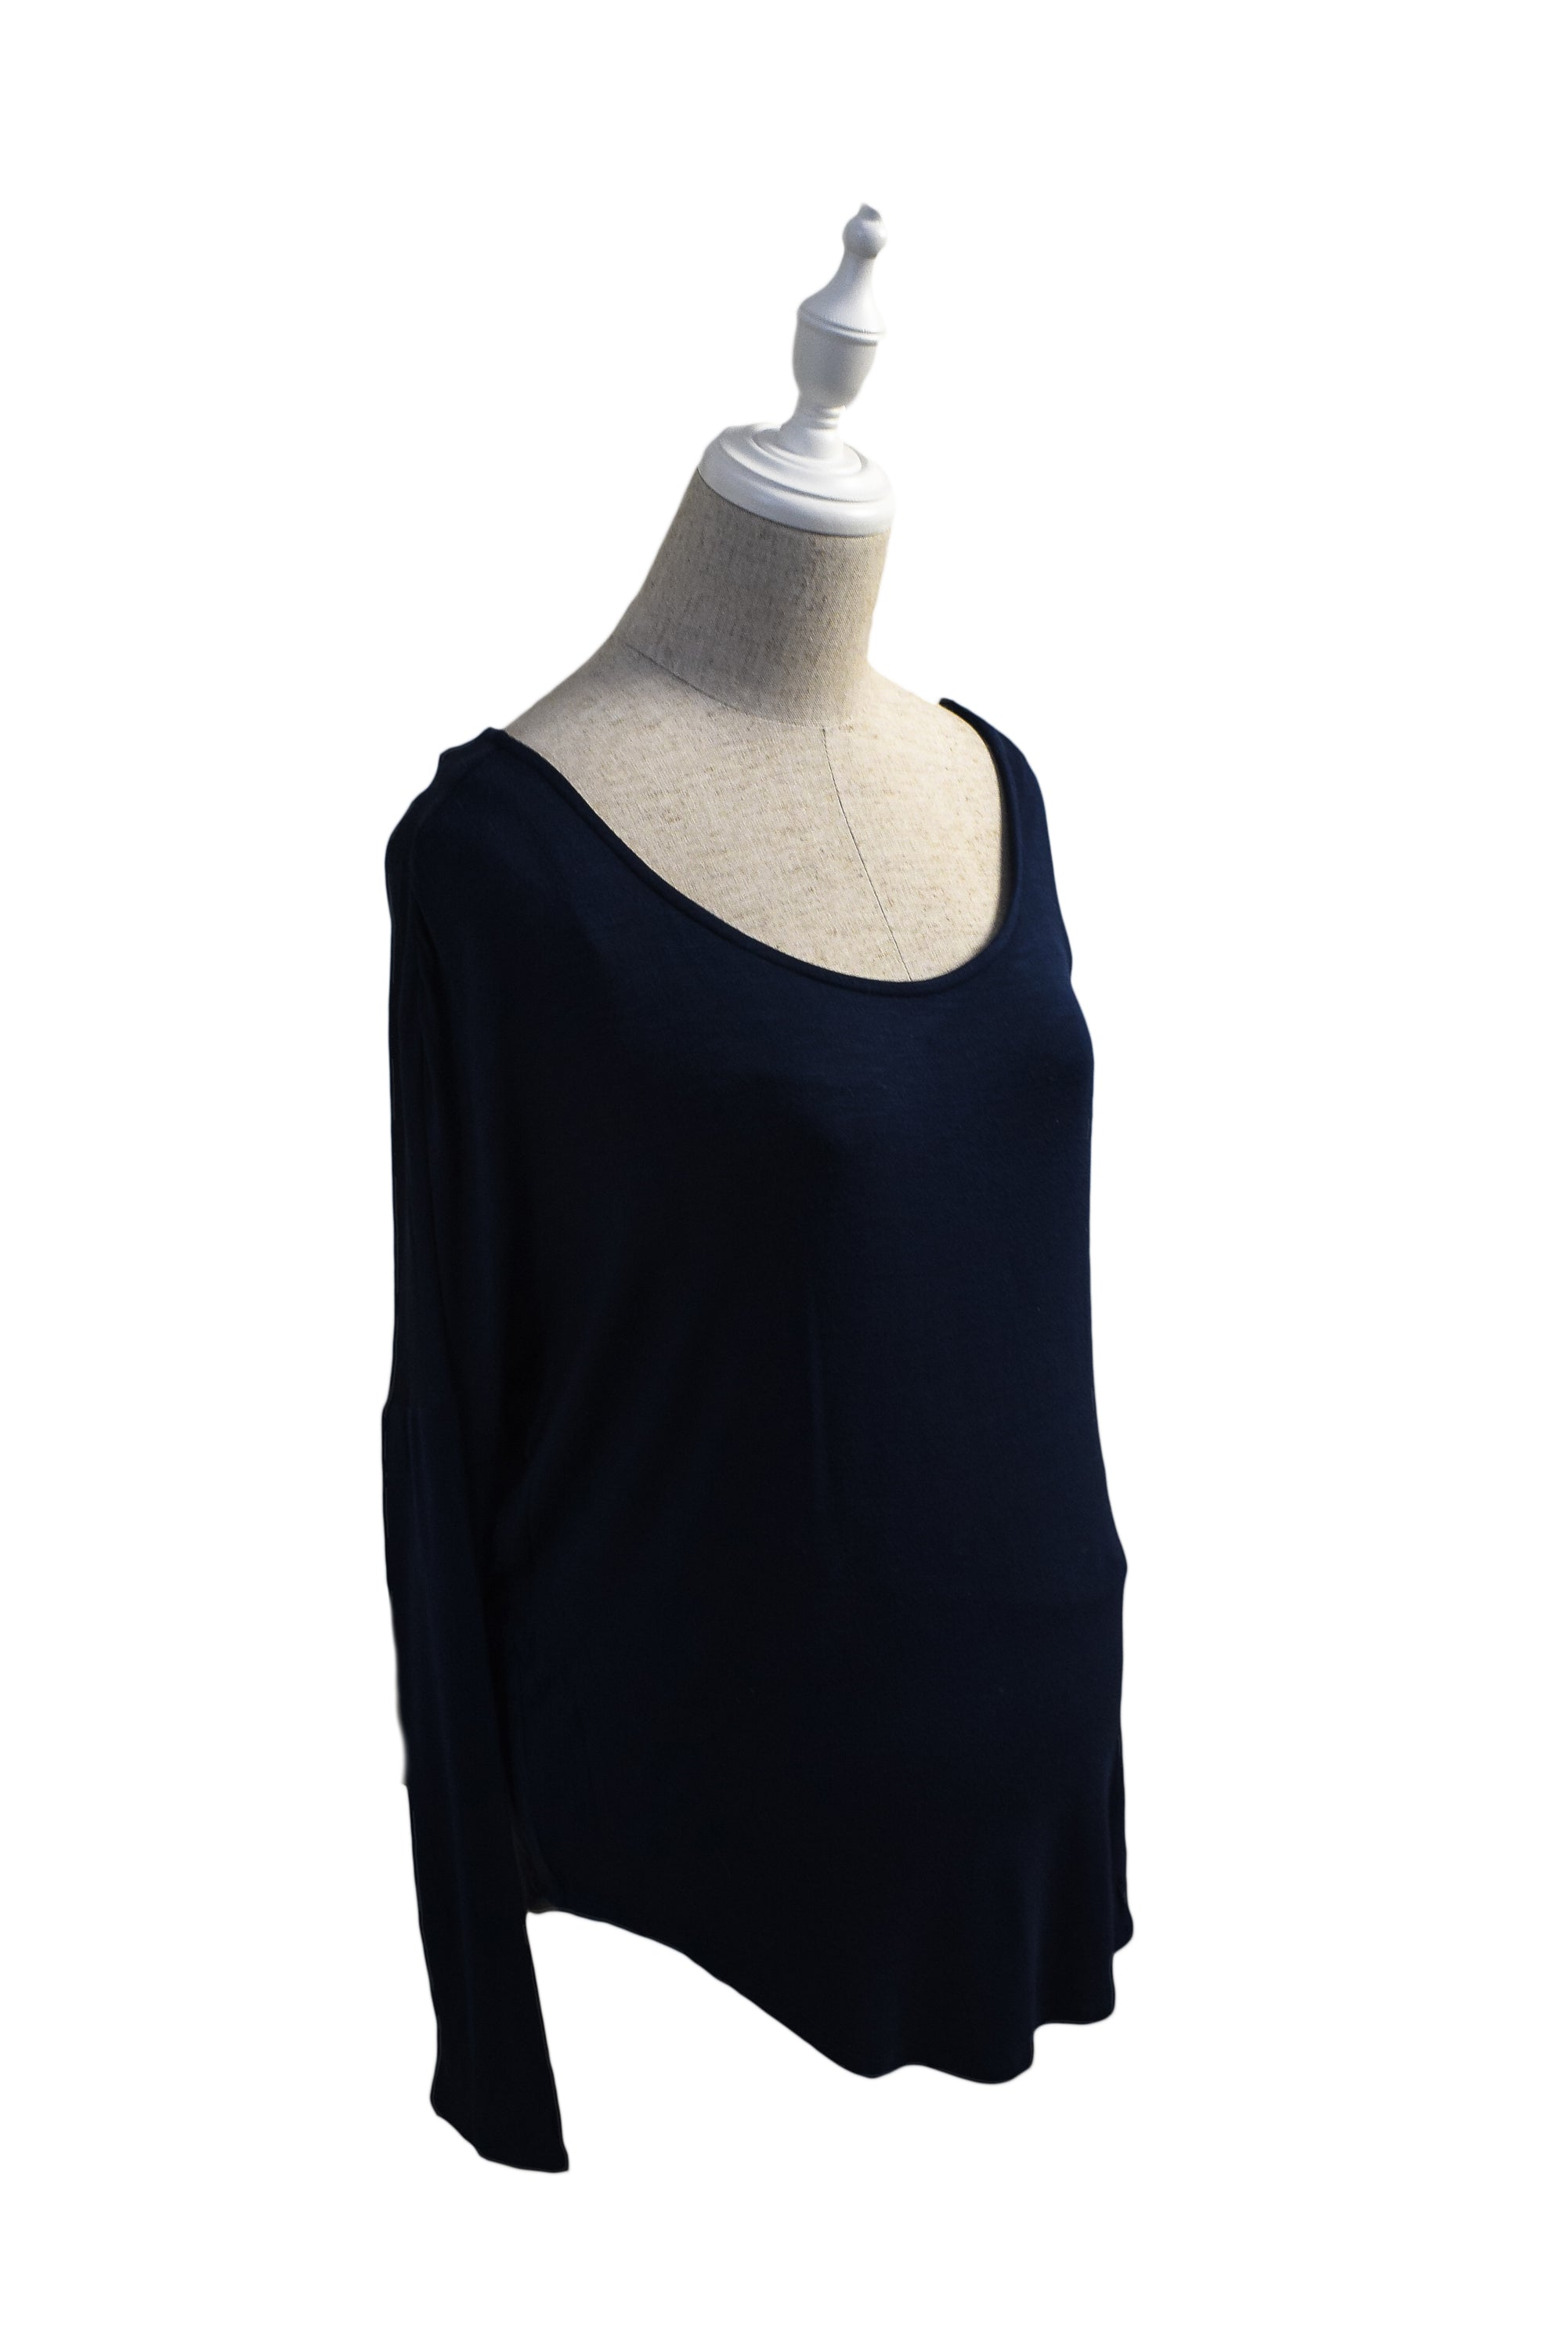 10044190 Seraphine Maternity~Nursing Top S (US 4) at Retykle